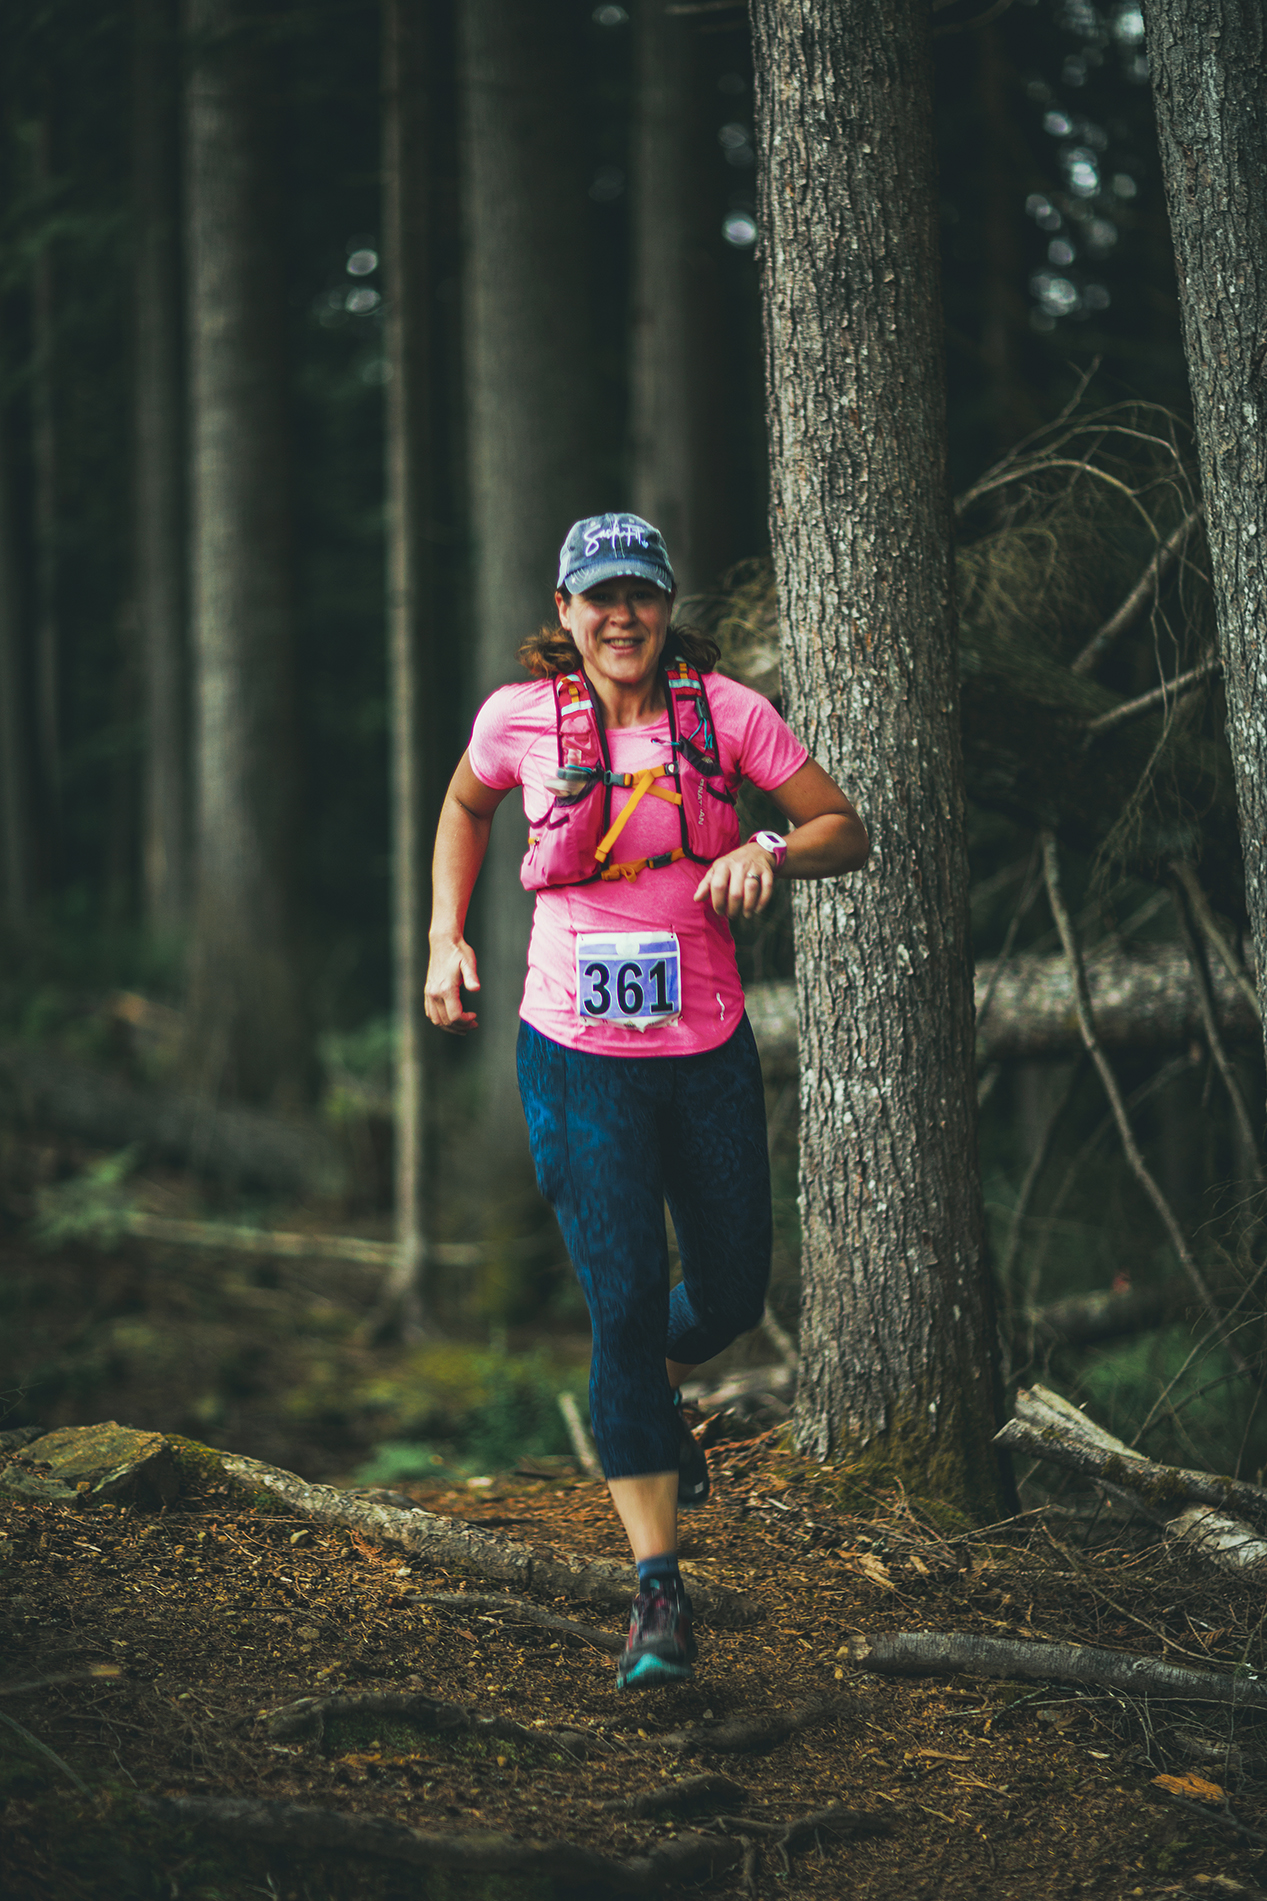 Fraser Valley Trail Races - Bear Mountain - IMG_2479 by Brice Ferre Studio - Vancouver Portrait Adventure and Athlete Photographer.jpg